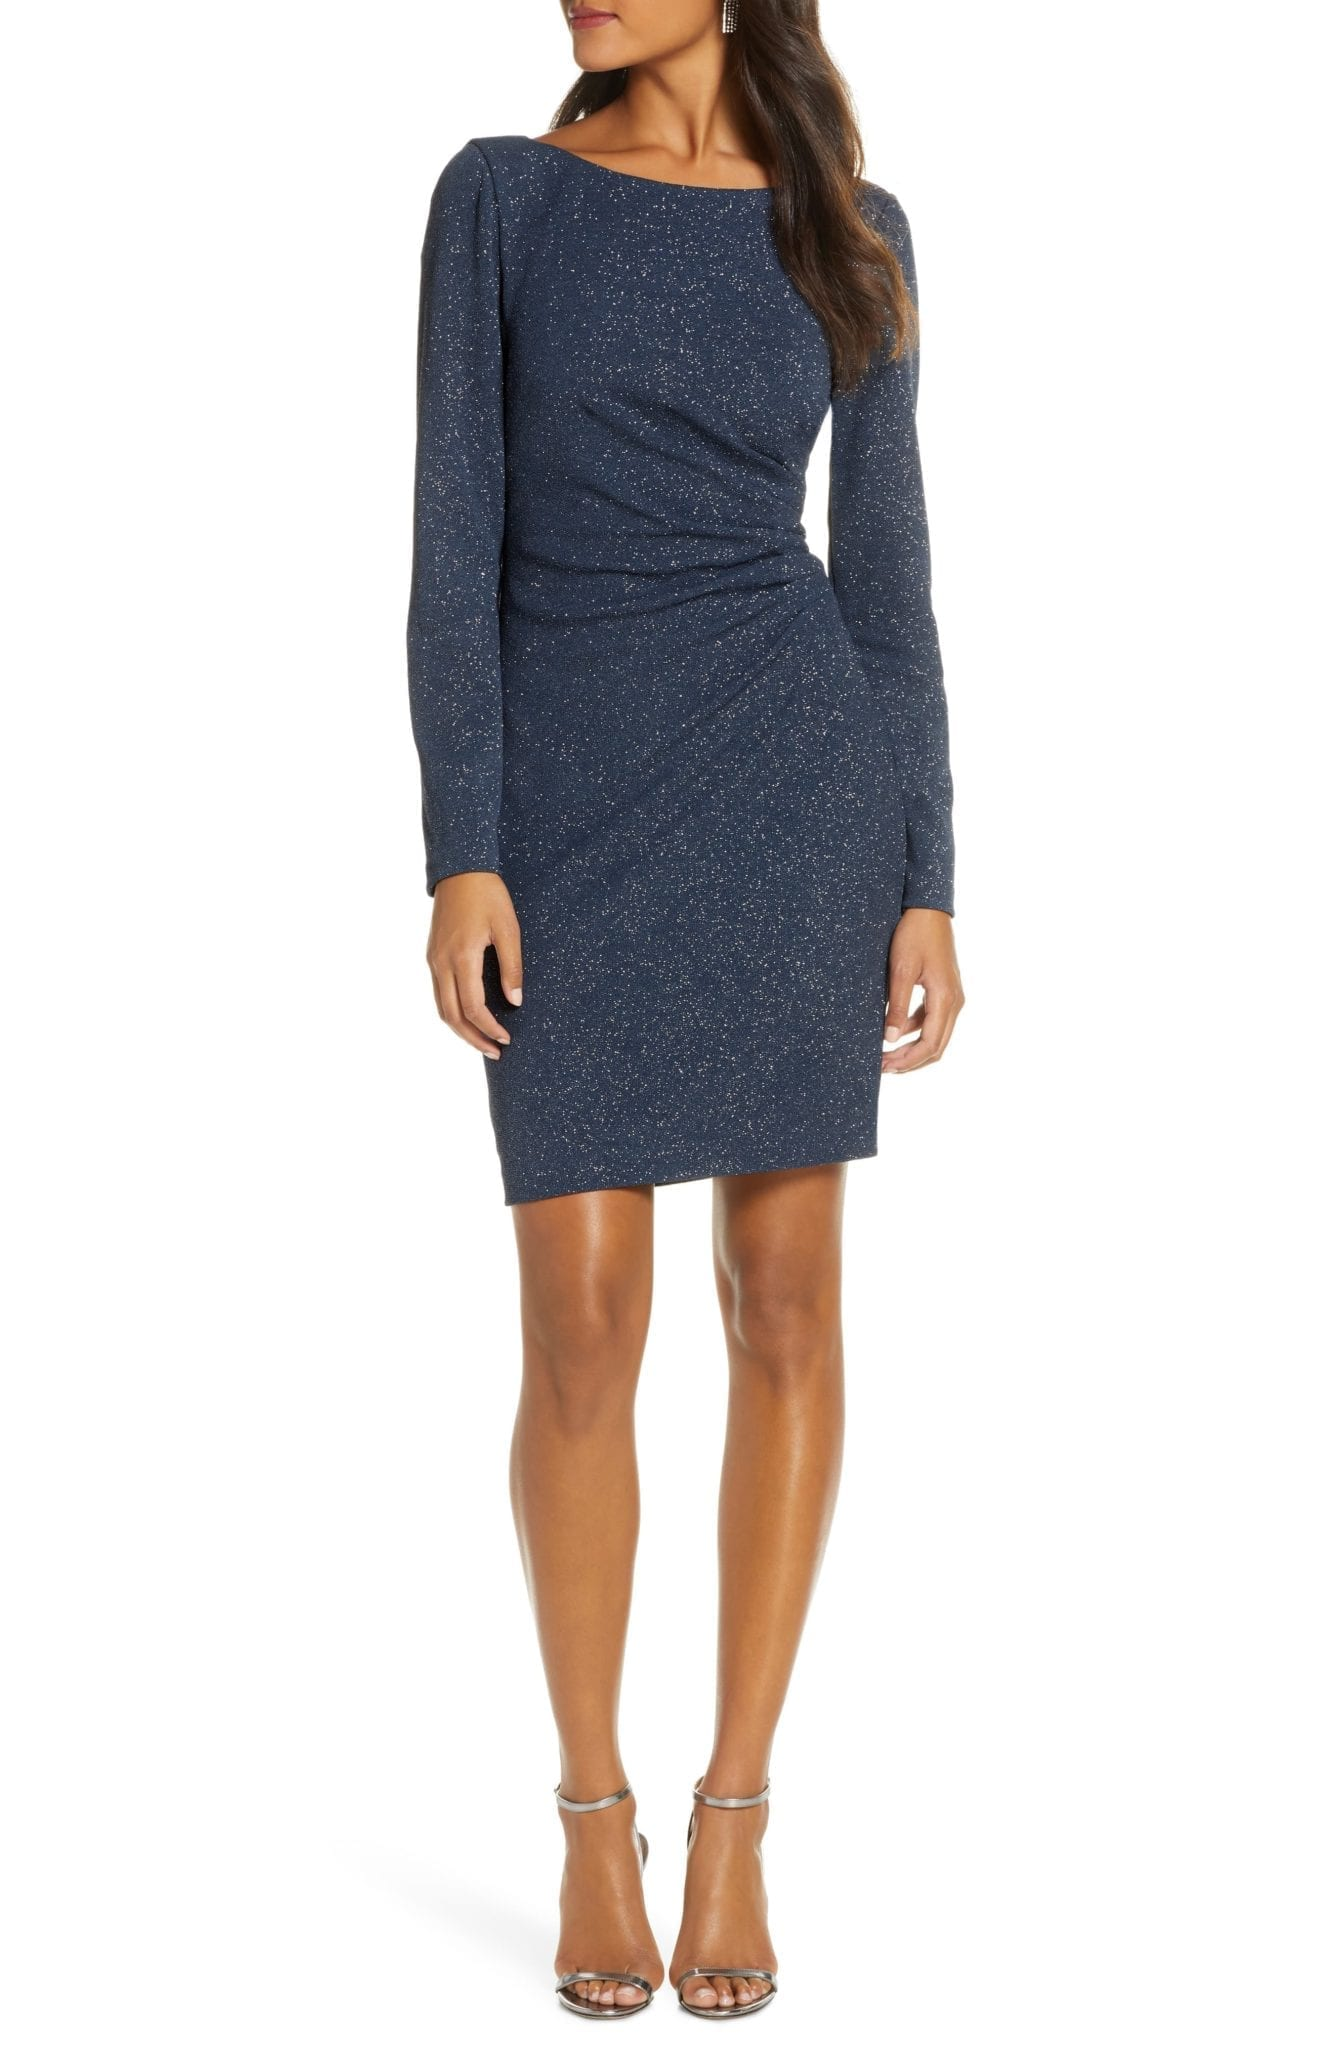 ELIZA J Long Sleeve Glitter Ruched Sheath Dress